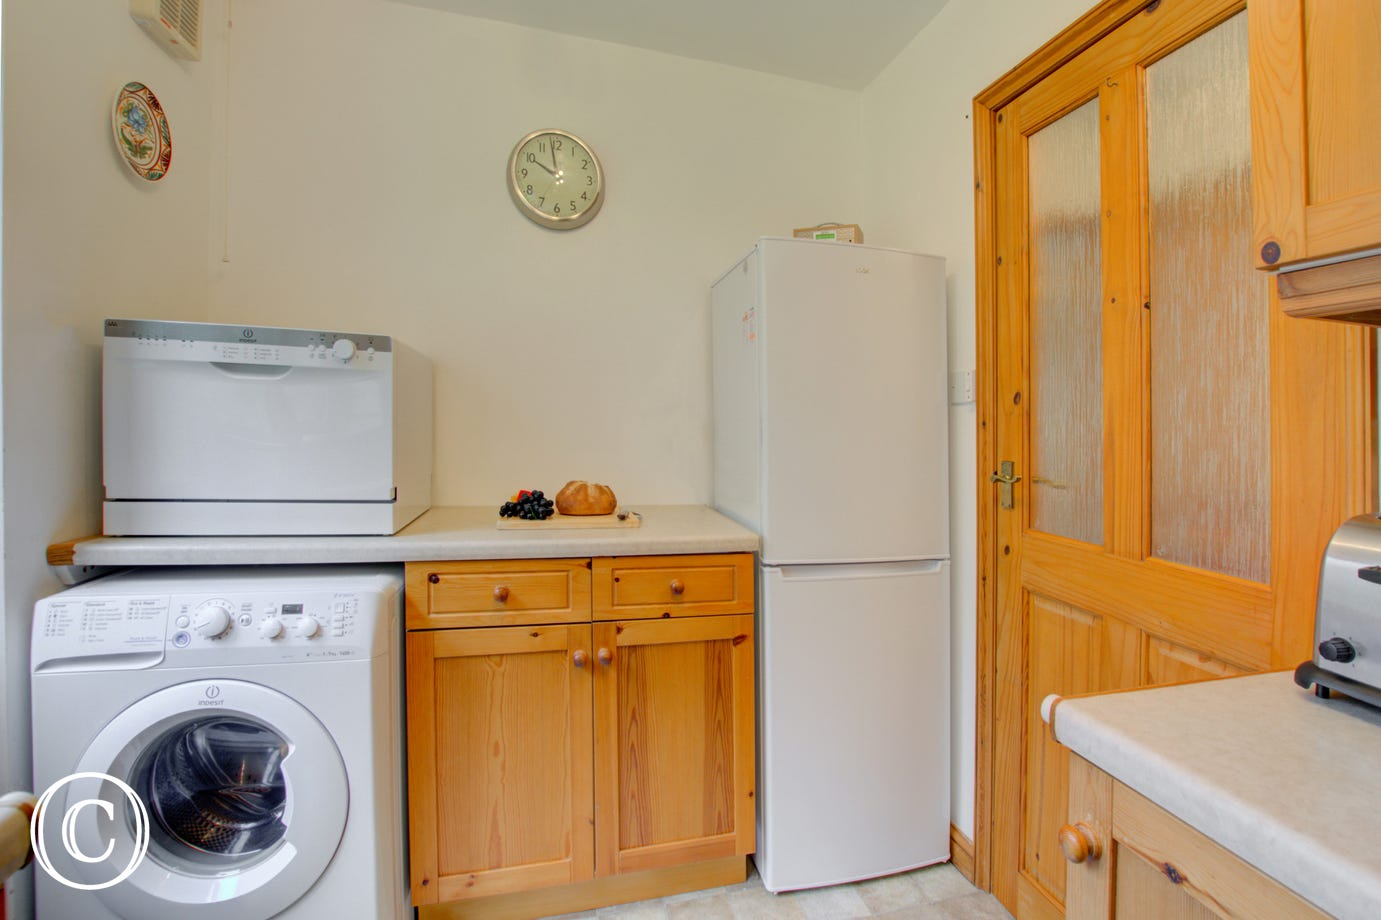 Kitchen showing fridge freezer and washing machine